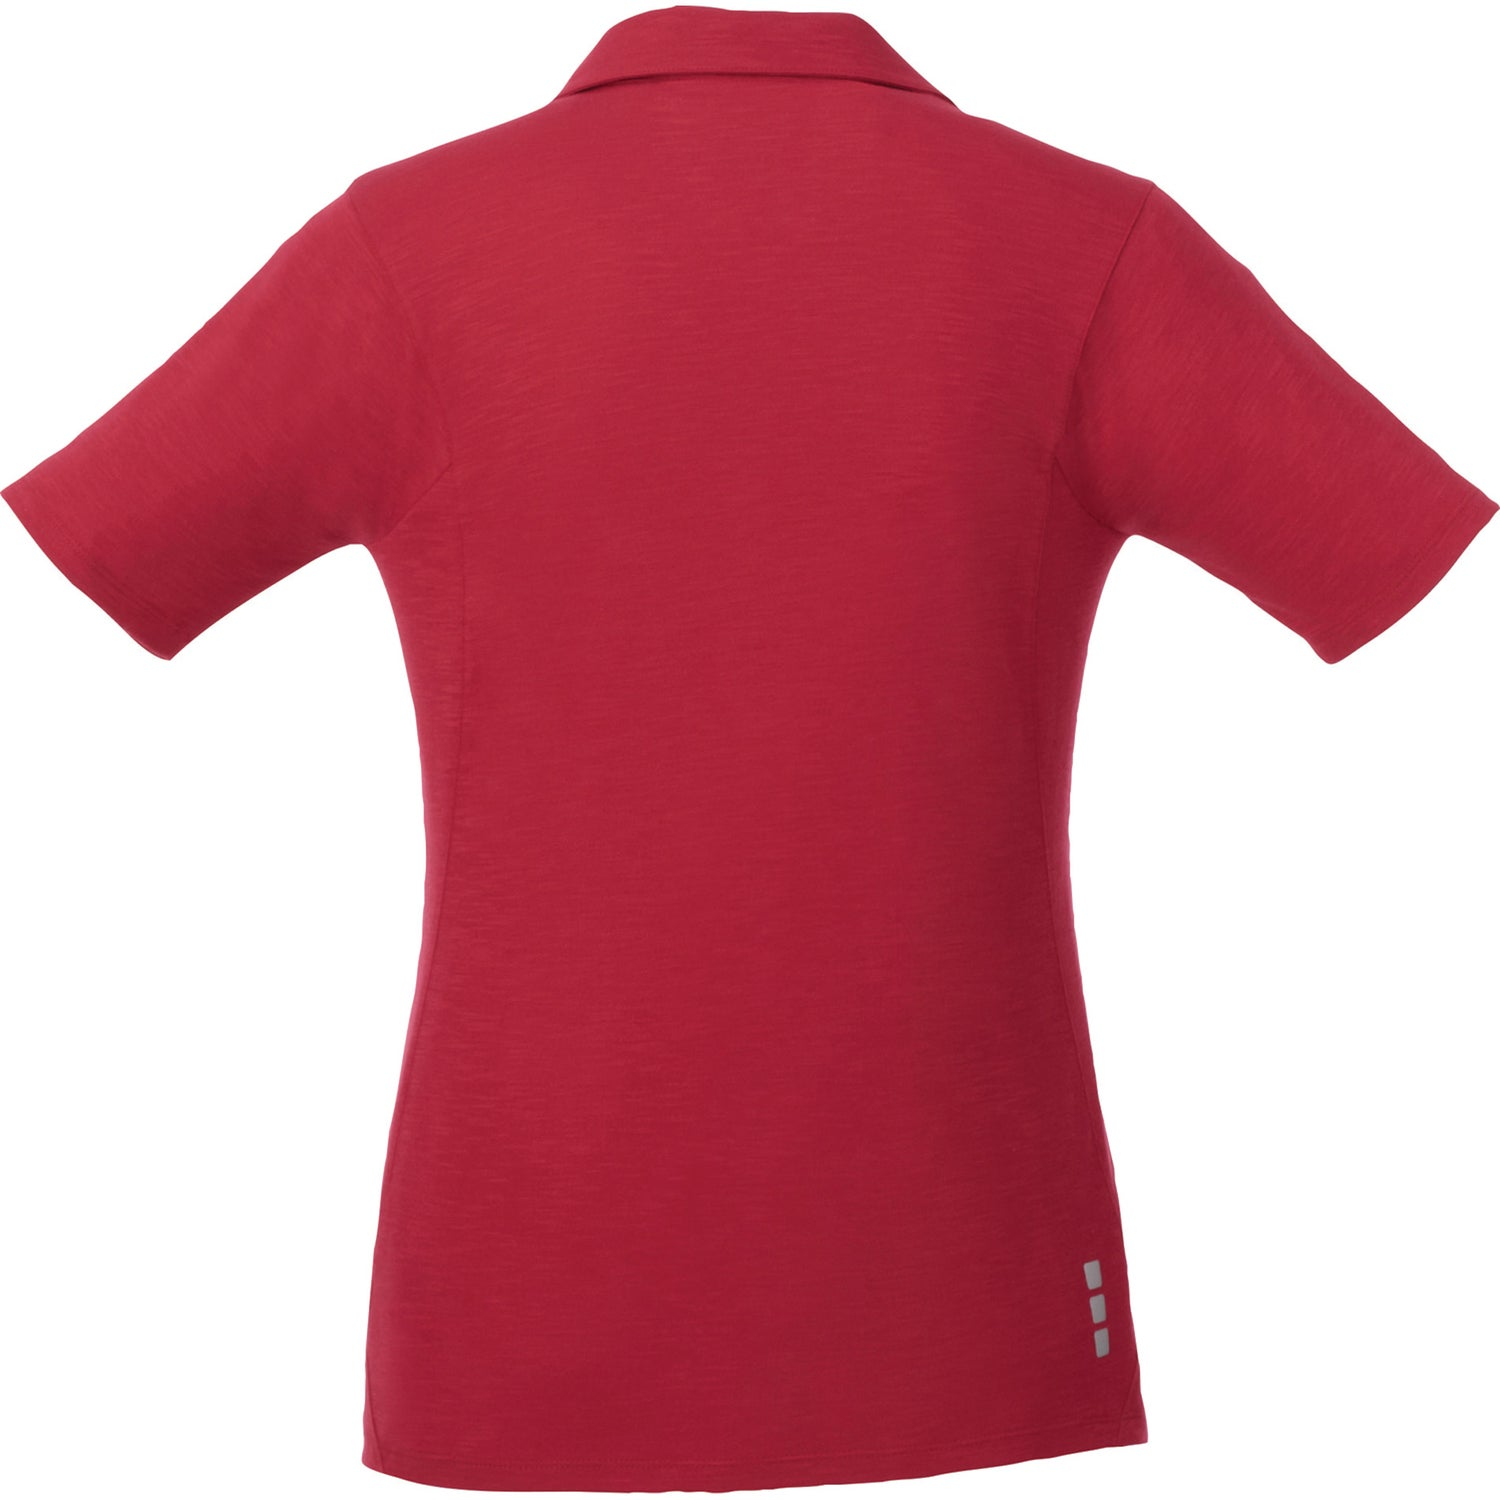 Jepson Short Sleeve Polo Shirt By Trimark Women 39 S